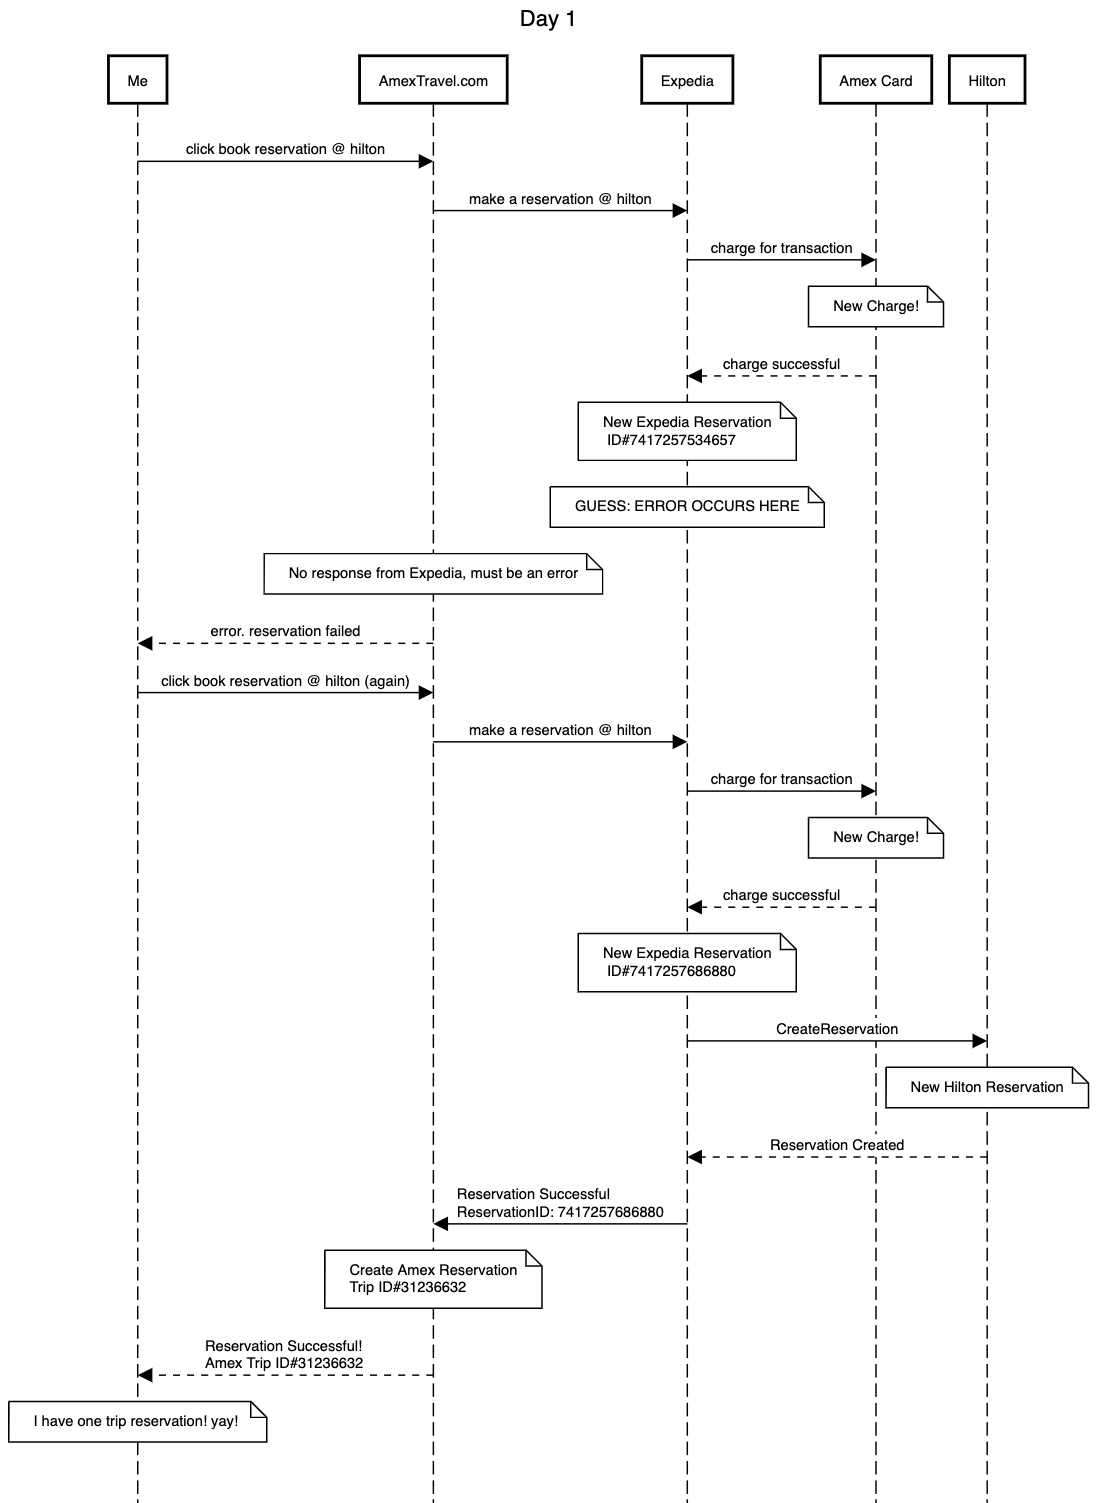 hight resolution of link to this sequence diagram